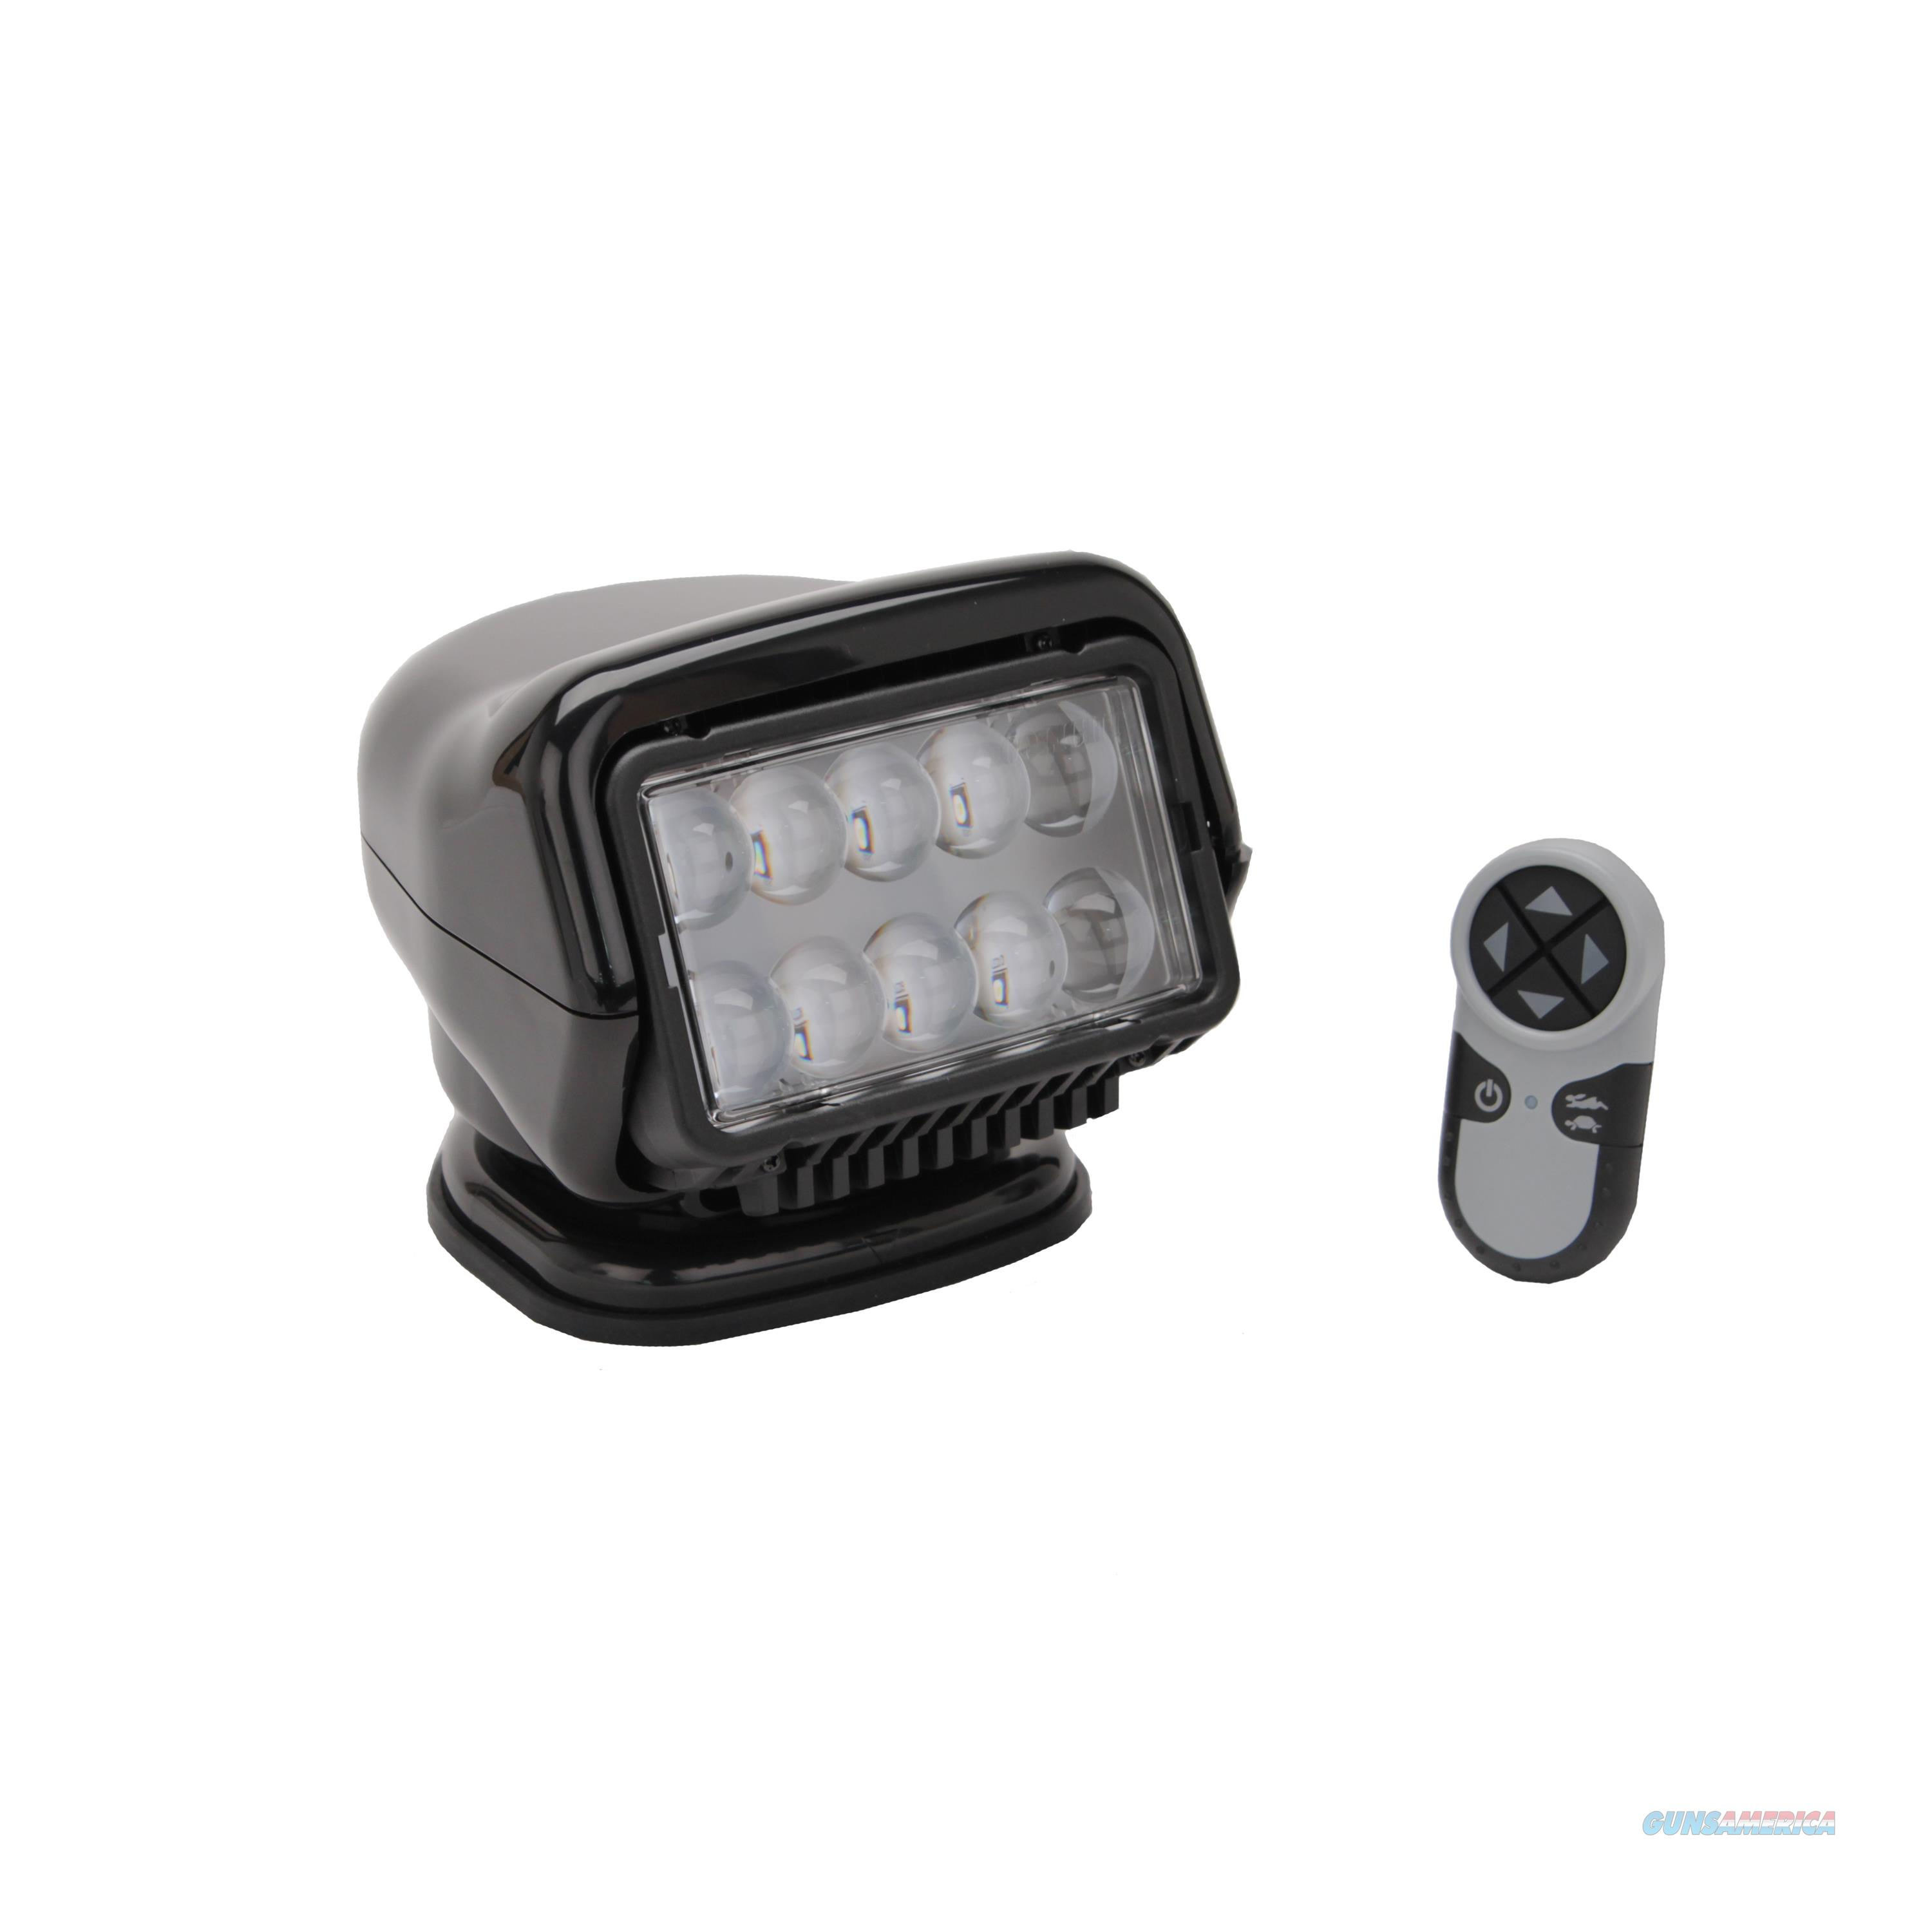 Golight Led Stryker Wireless Handheld Remote 30514  Non-Guns > Miscellaneous